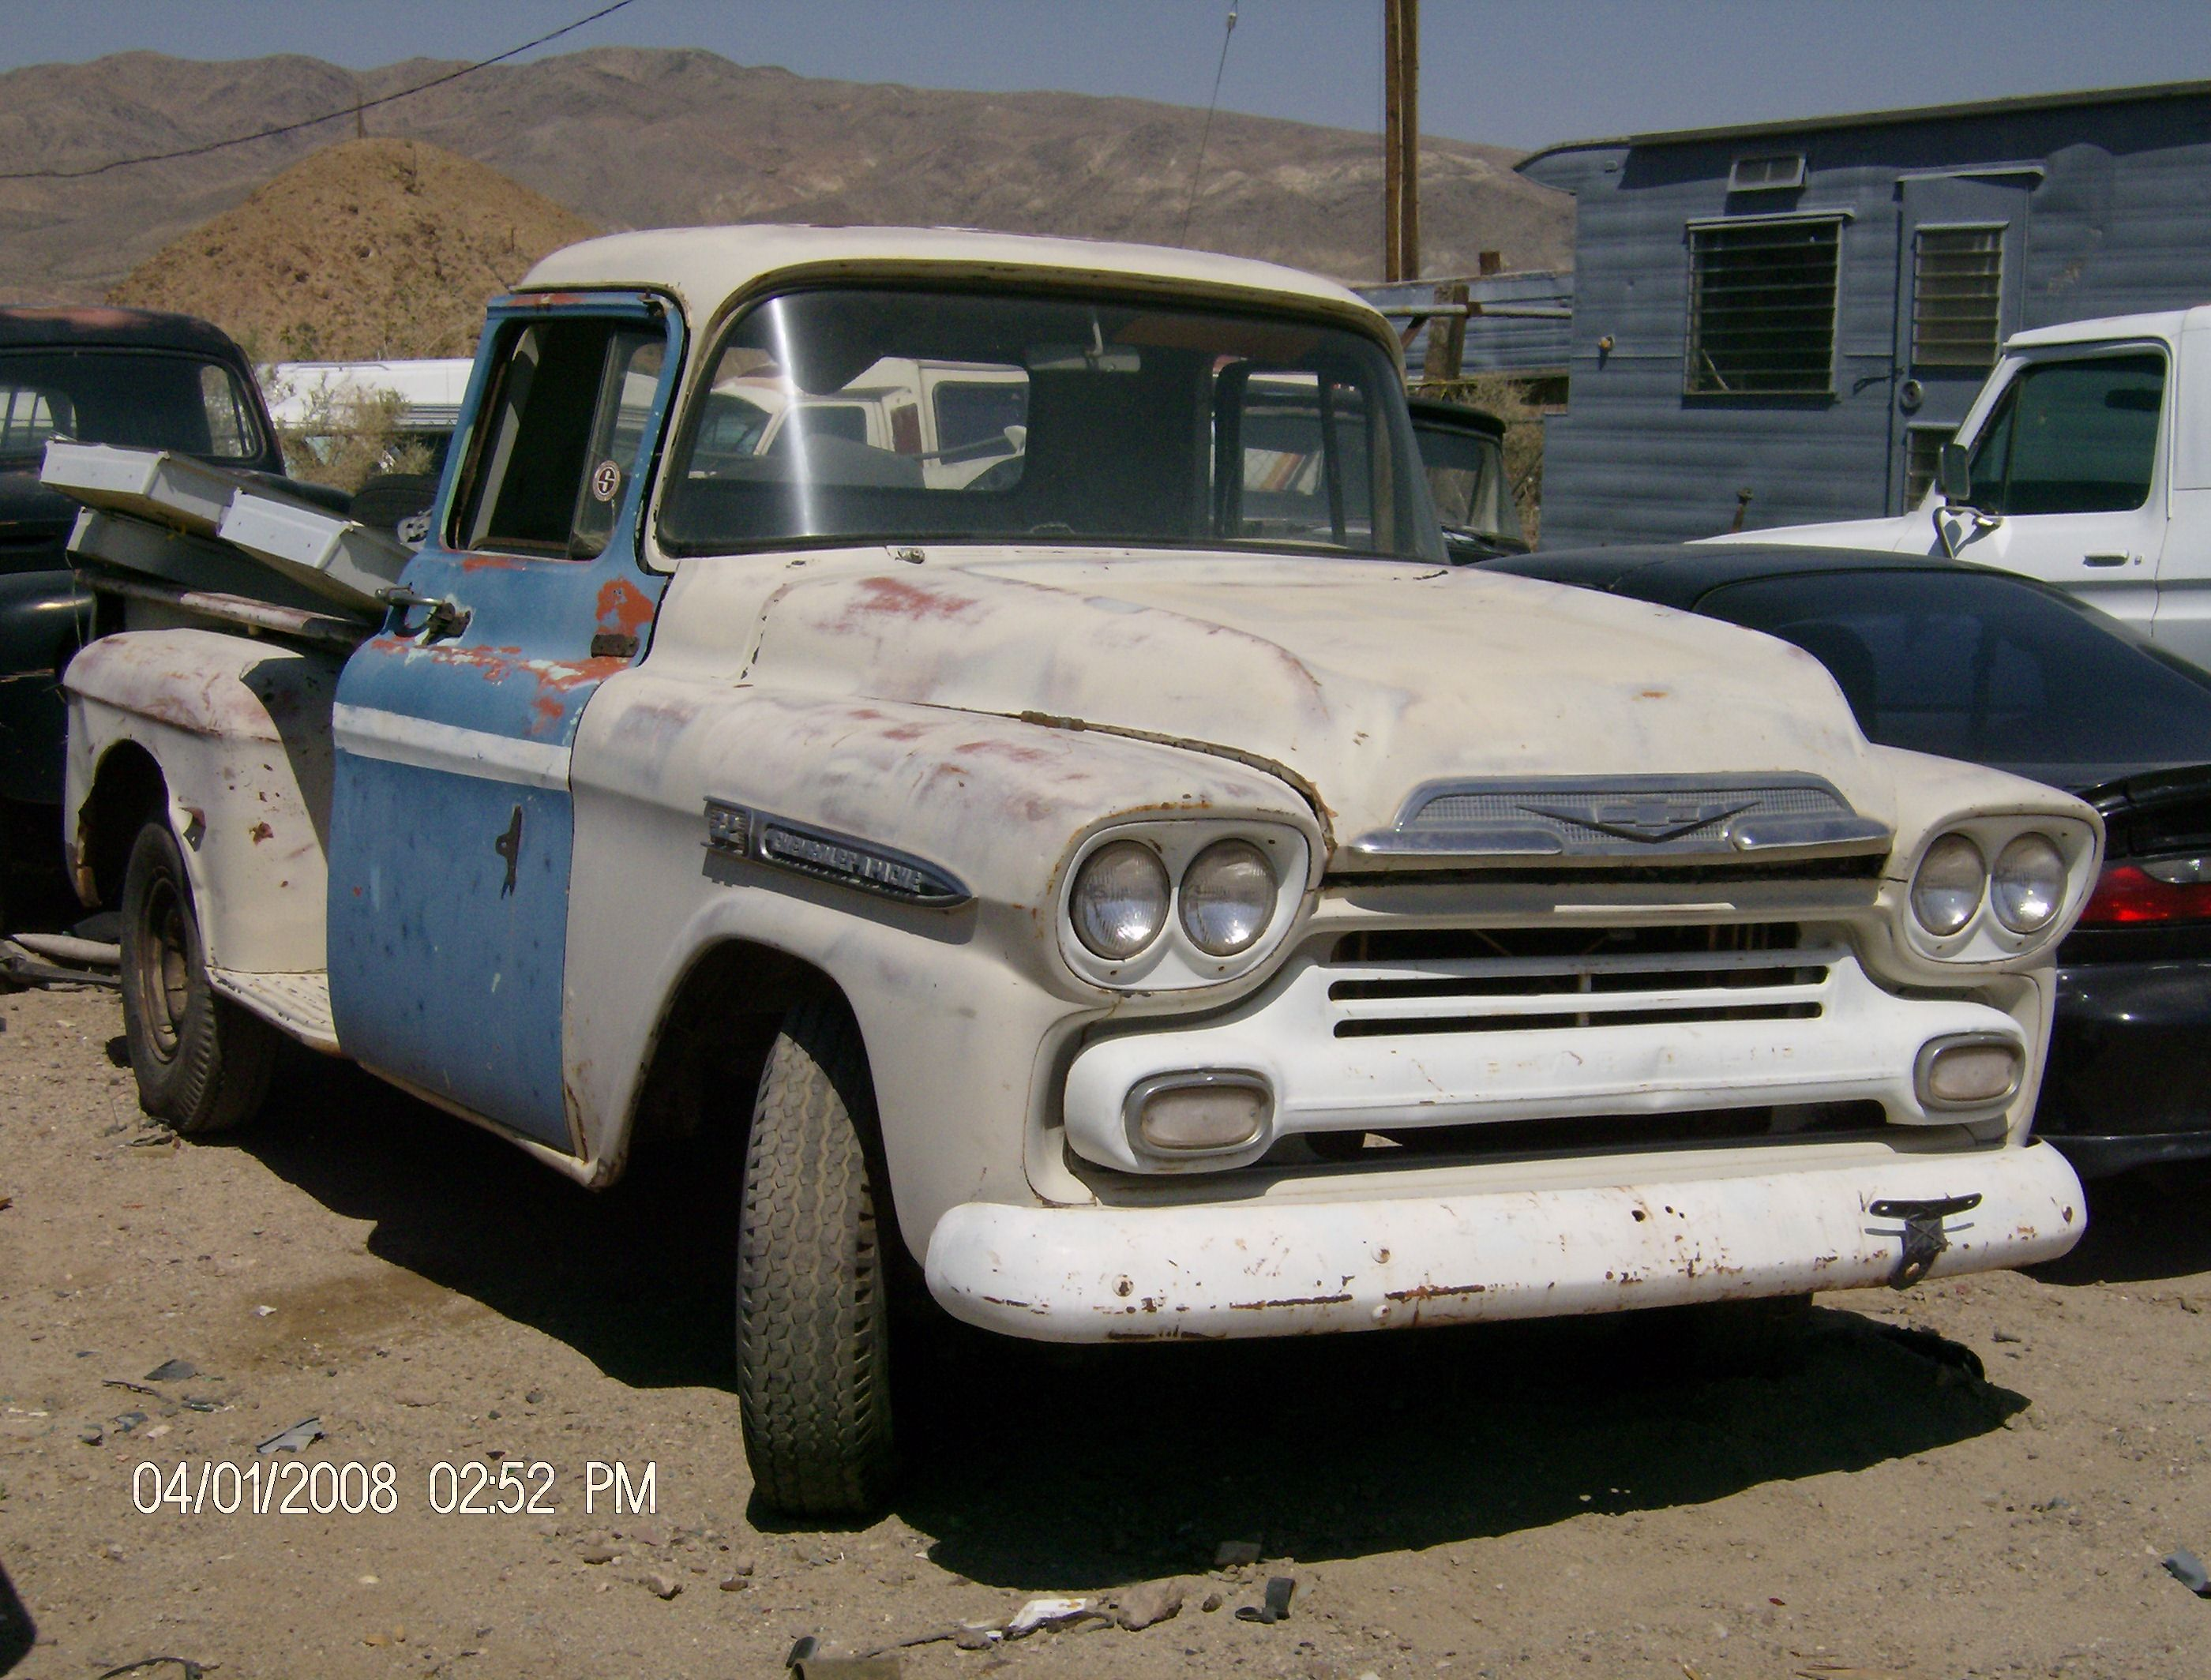 1957 chevy apache - Google Search | Classic Pick-up Trucks ...